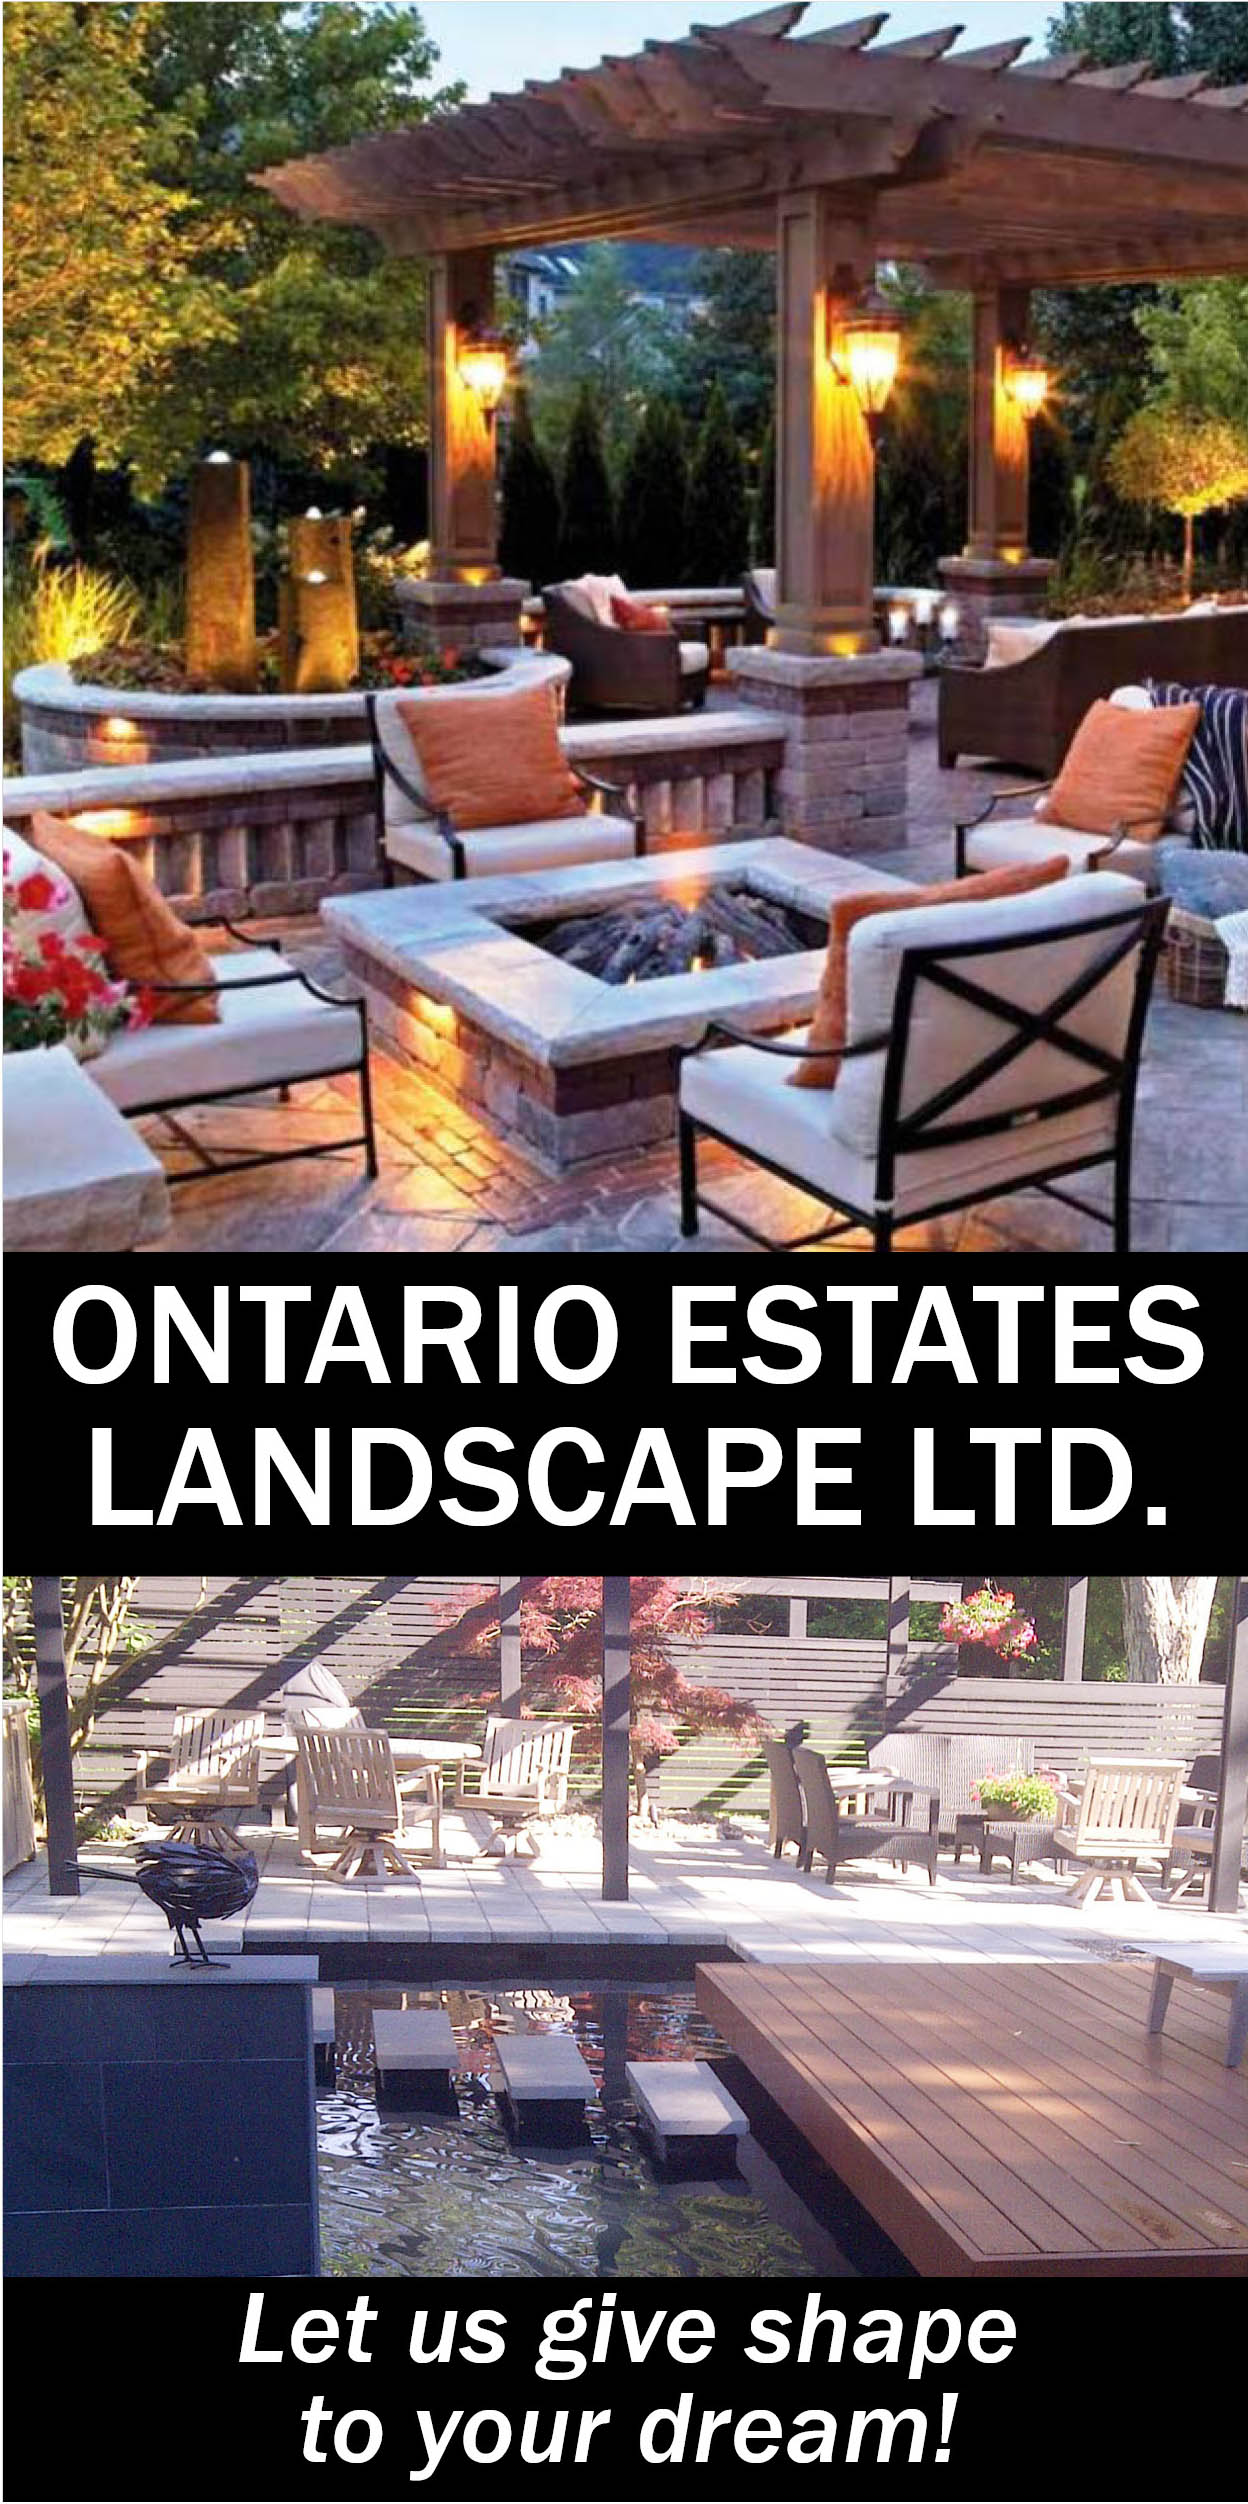 ONTARIO ESTATES LANDSCAPE LTD.